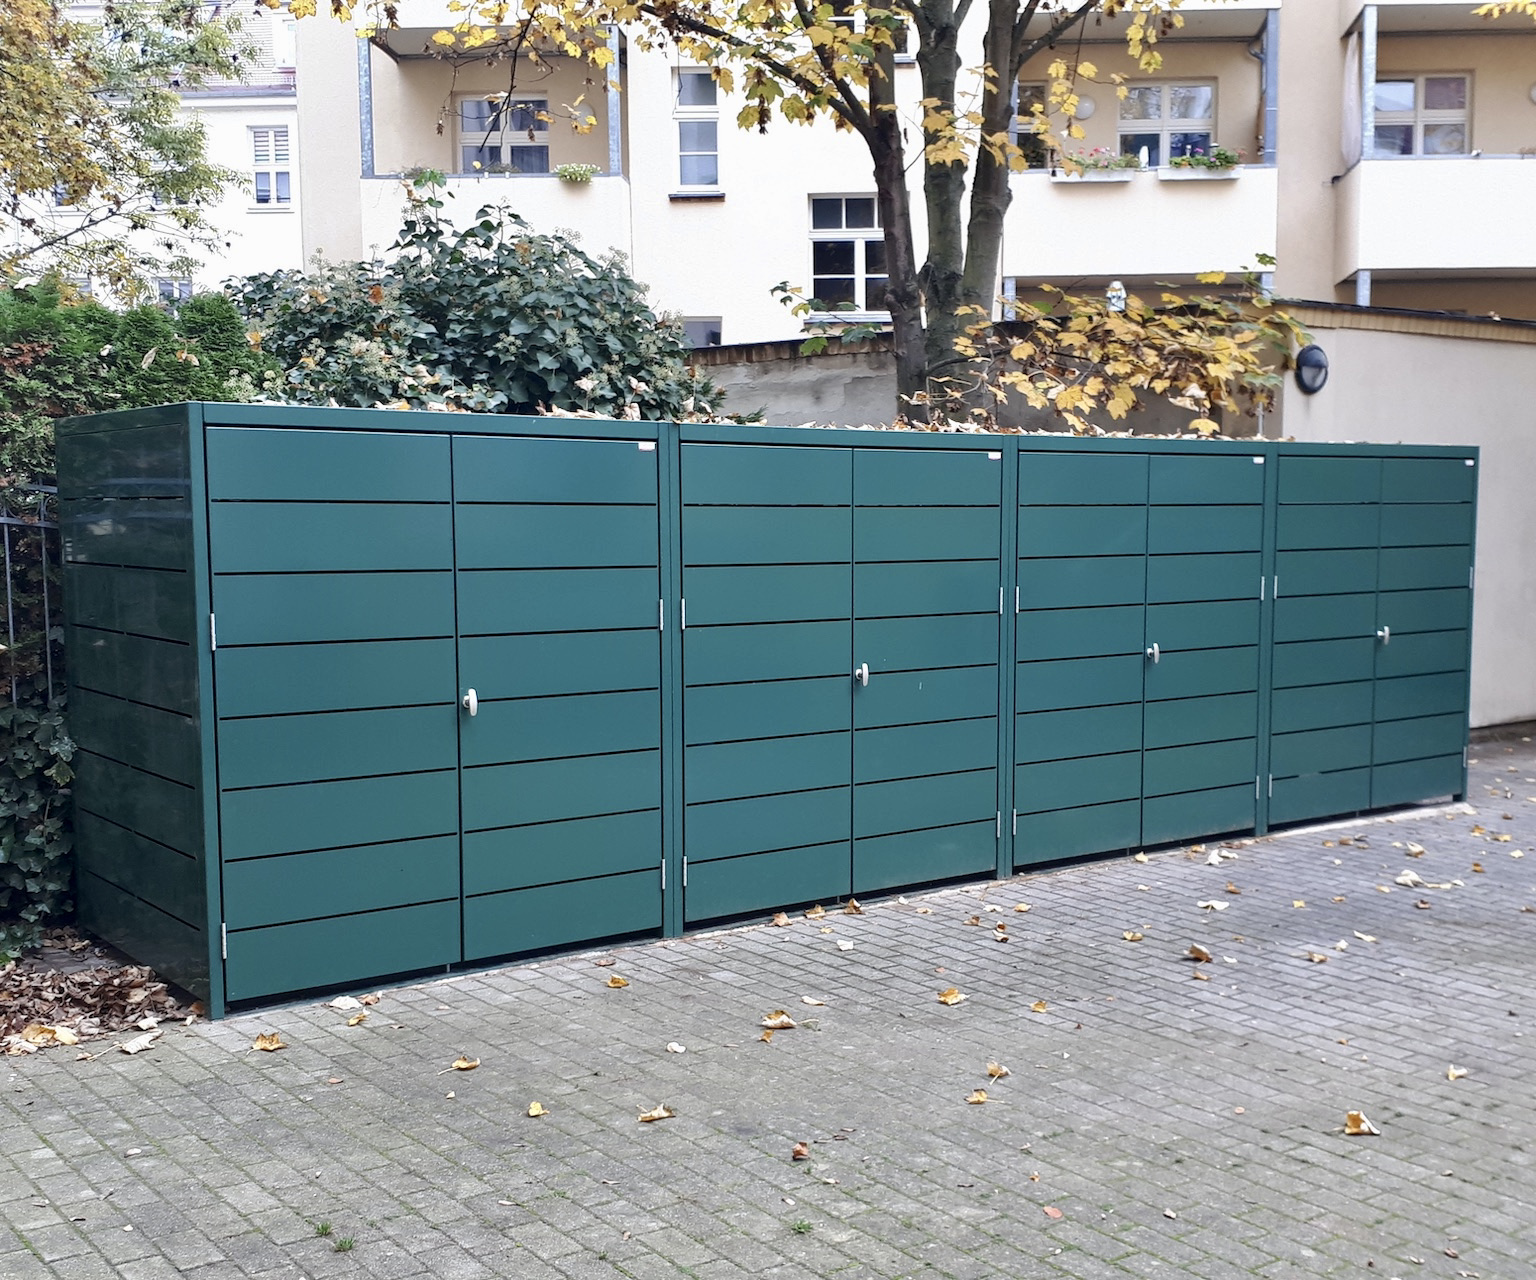 Müllcontainerboxen